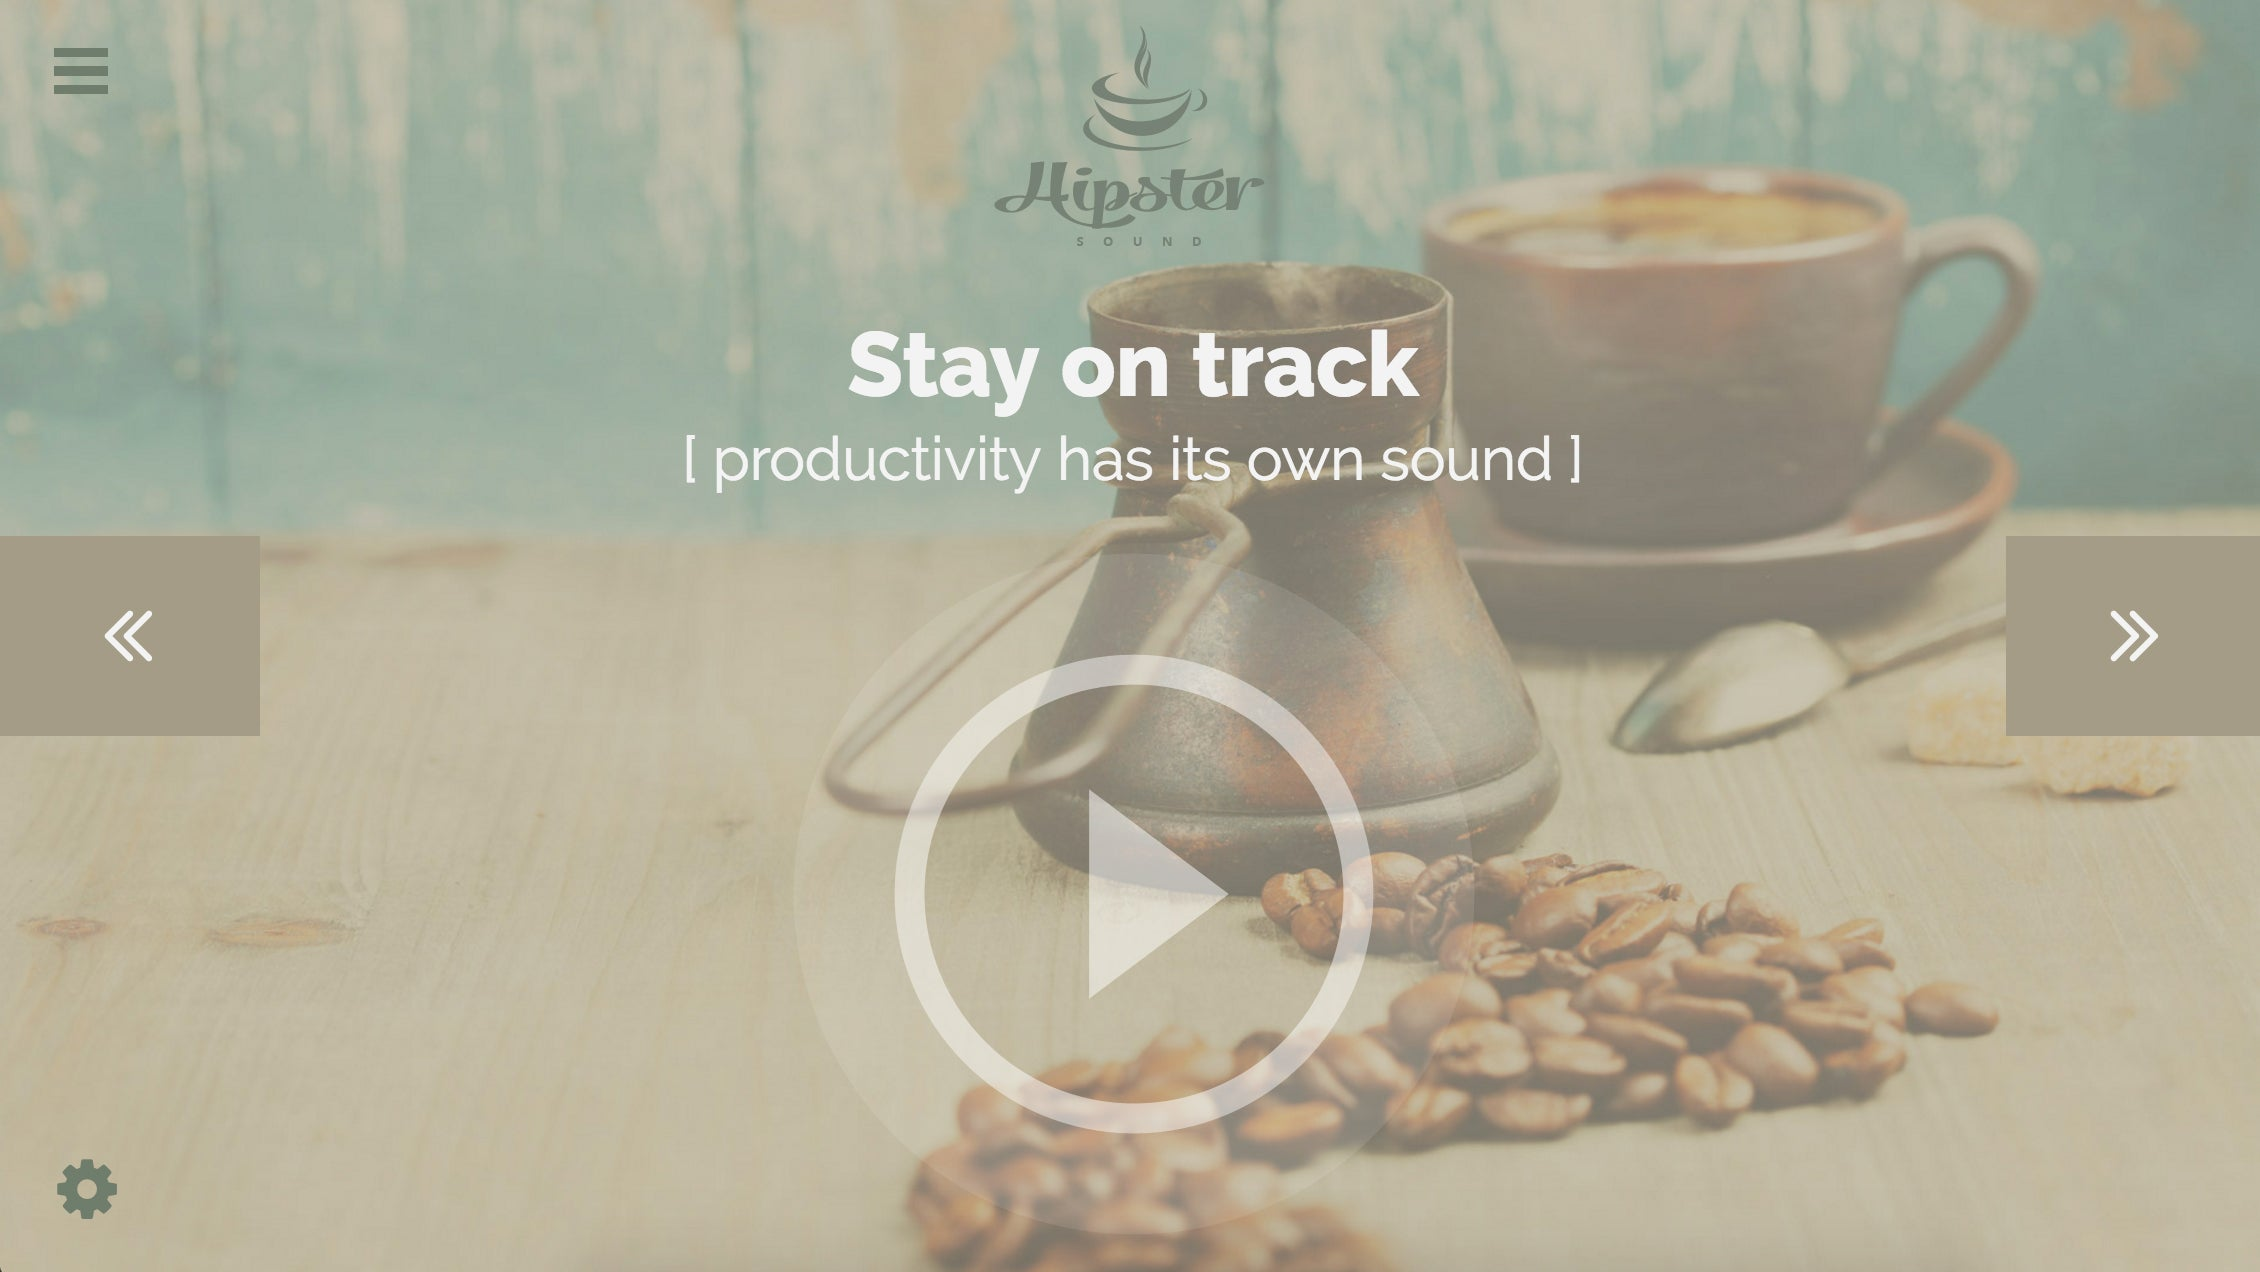 Hipster White Noise Generator Simulates Working In A Crowded Coffee Shop